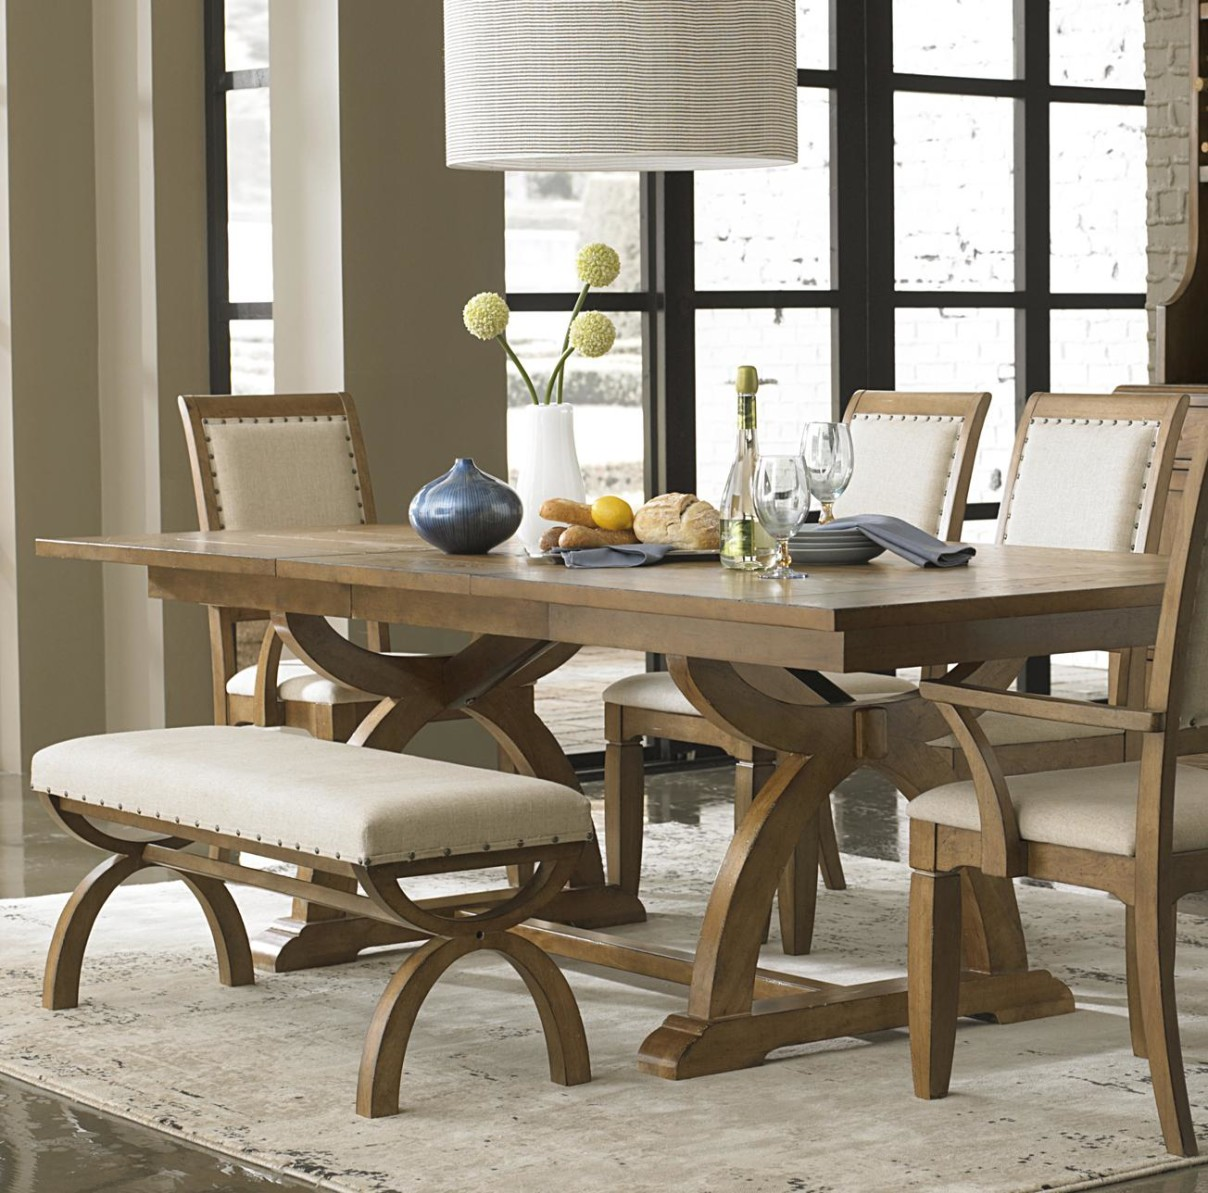 Image of: Distressed Wood Dining Room Table Color